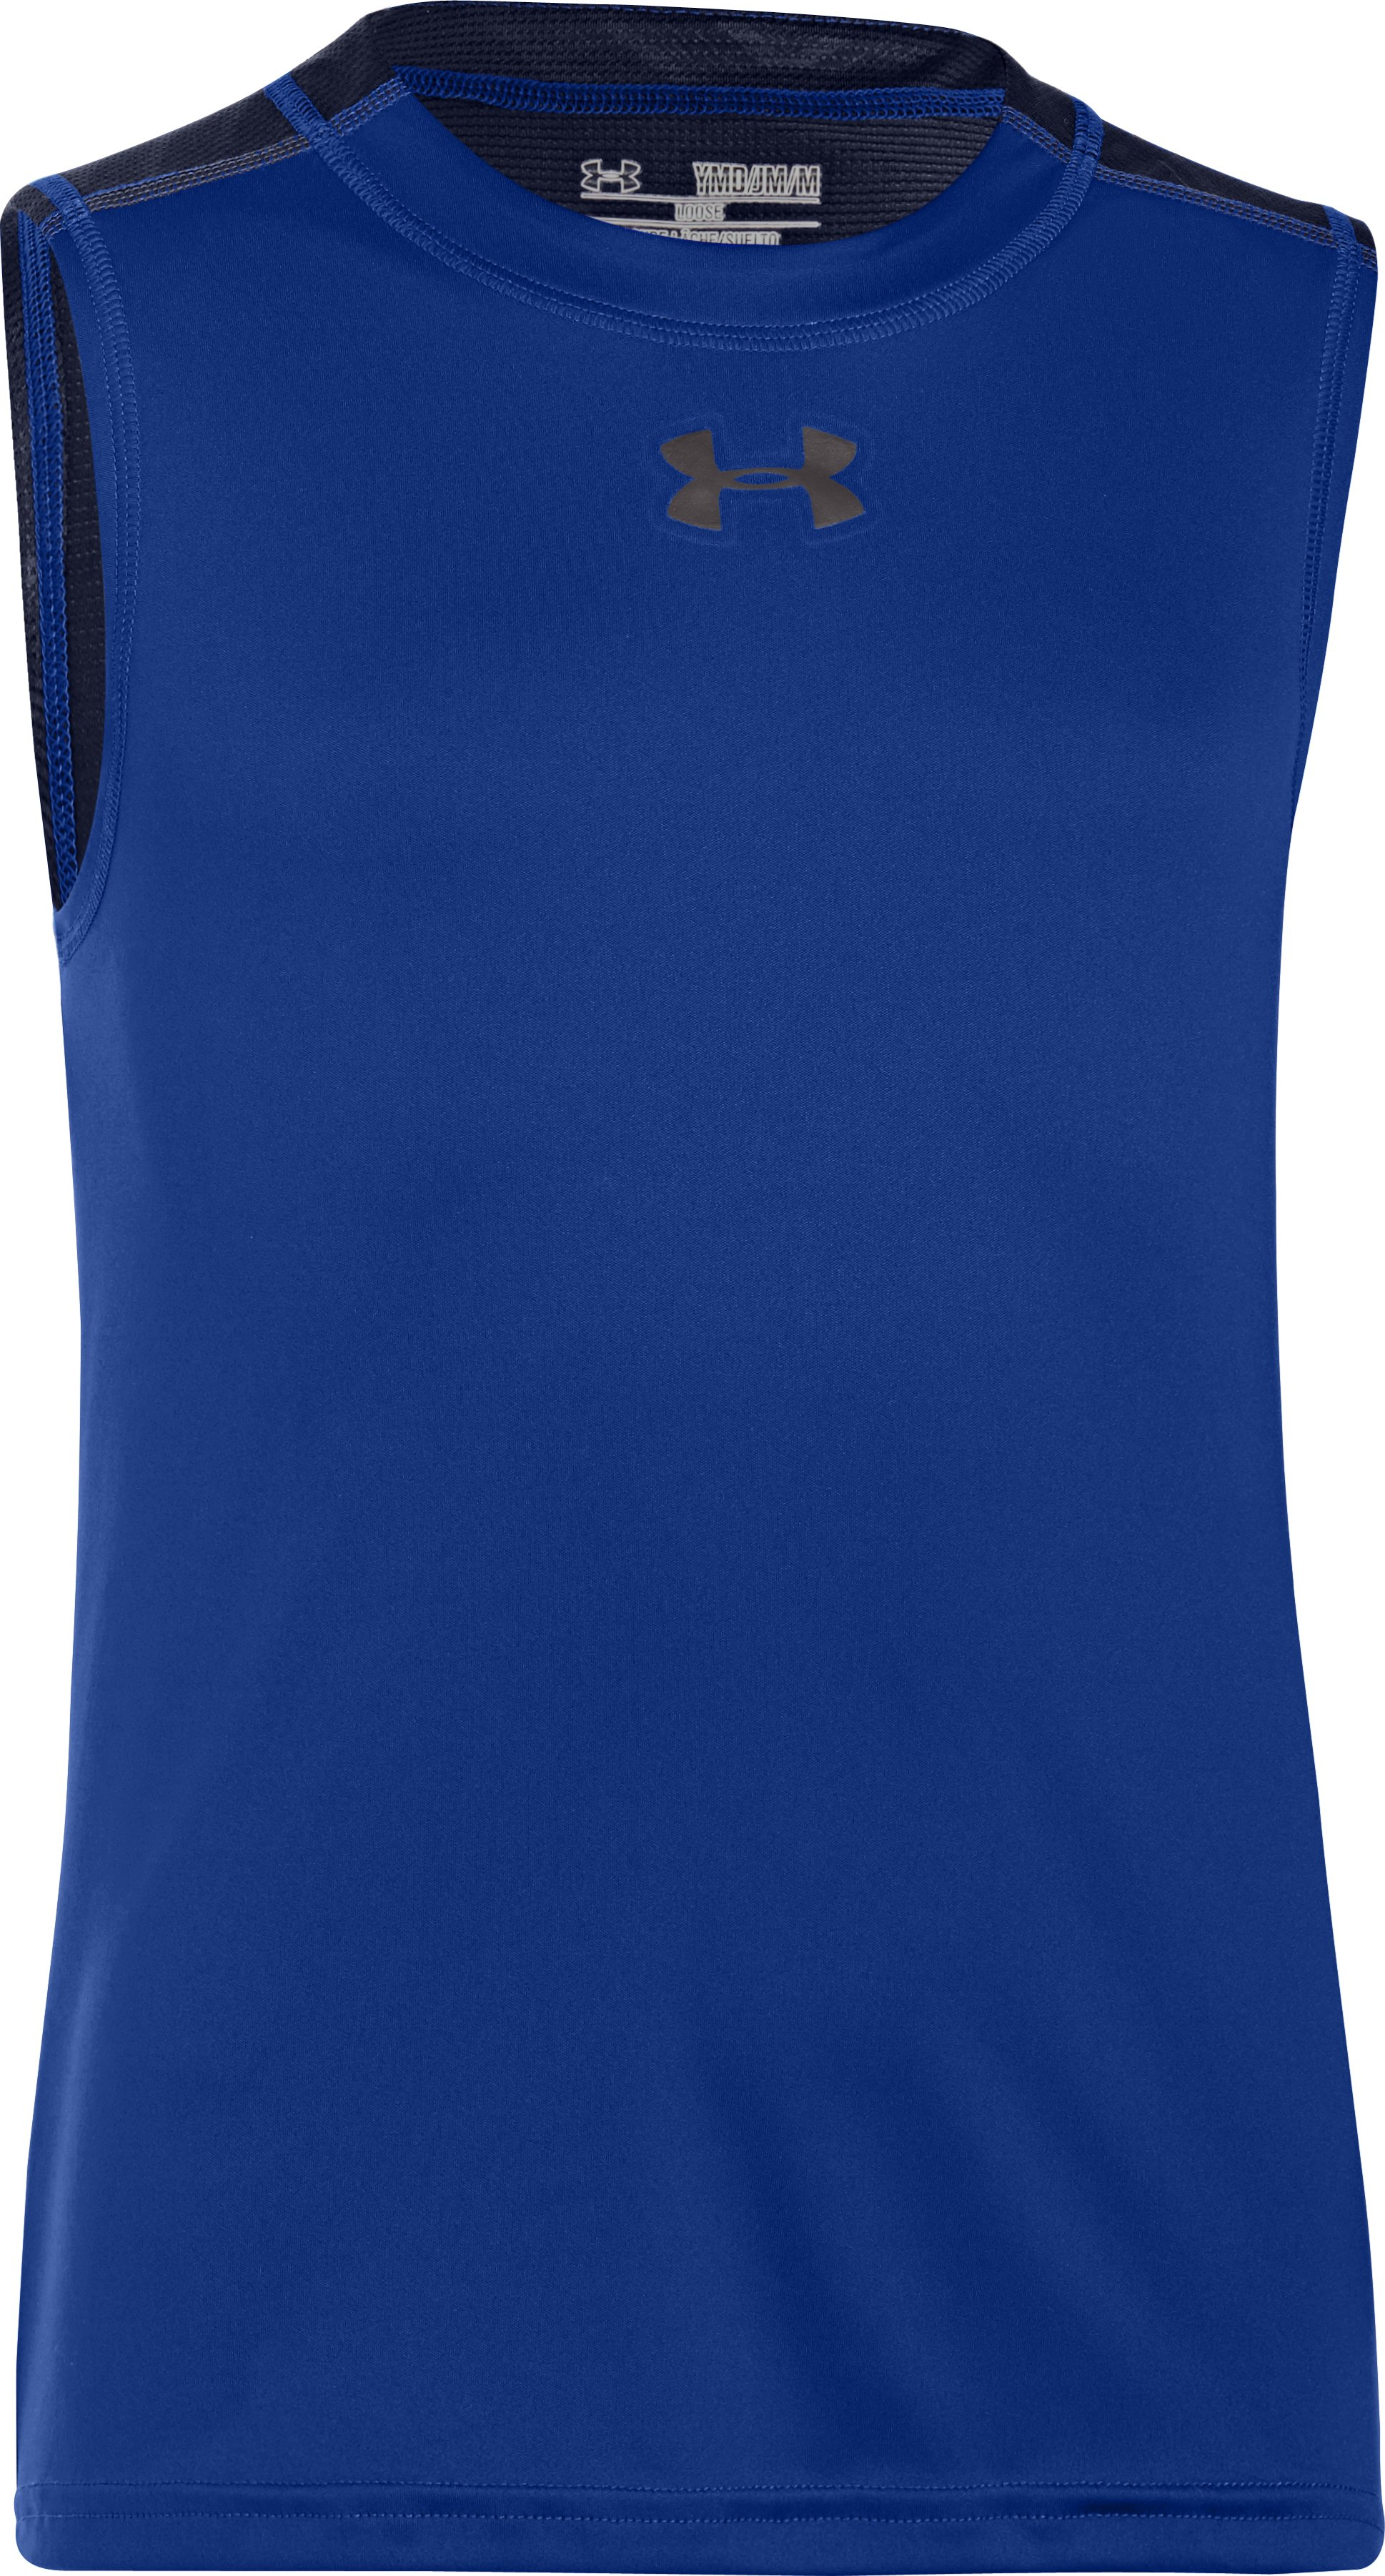 Boys' UA Next Level Basketball Tank, Royal, zoomed image